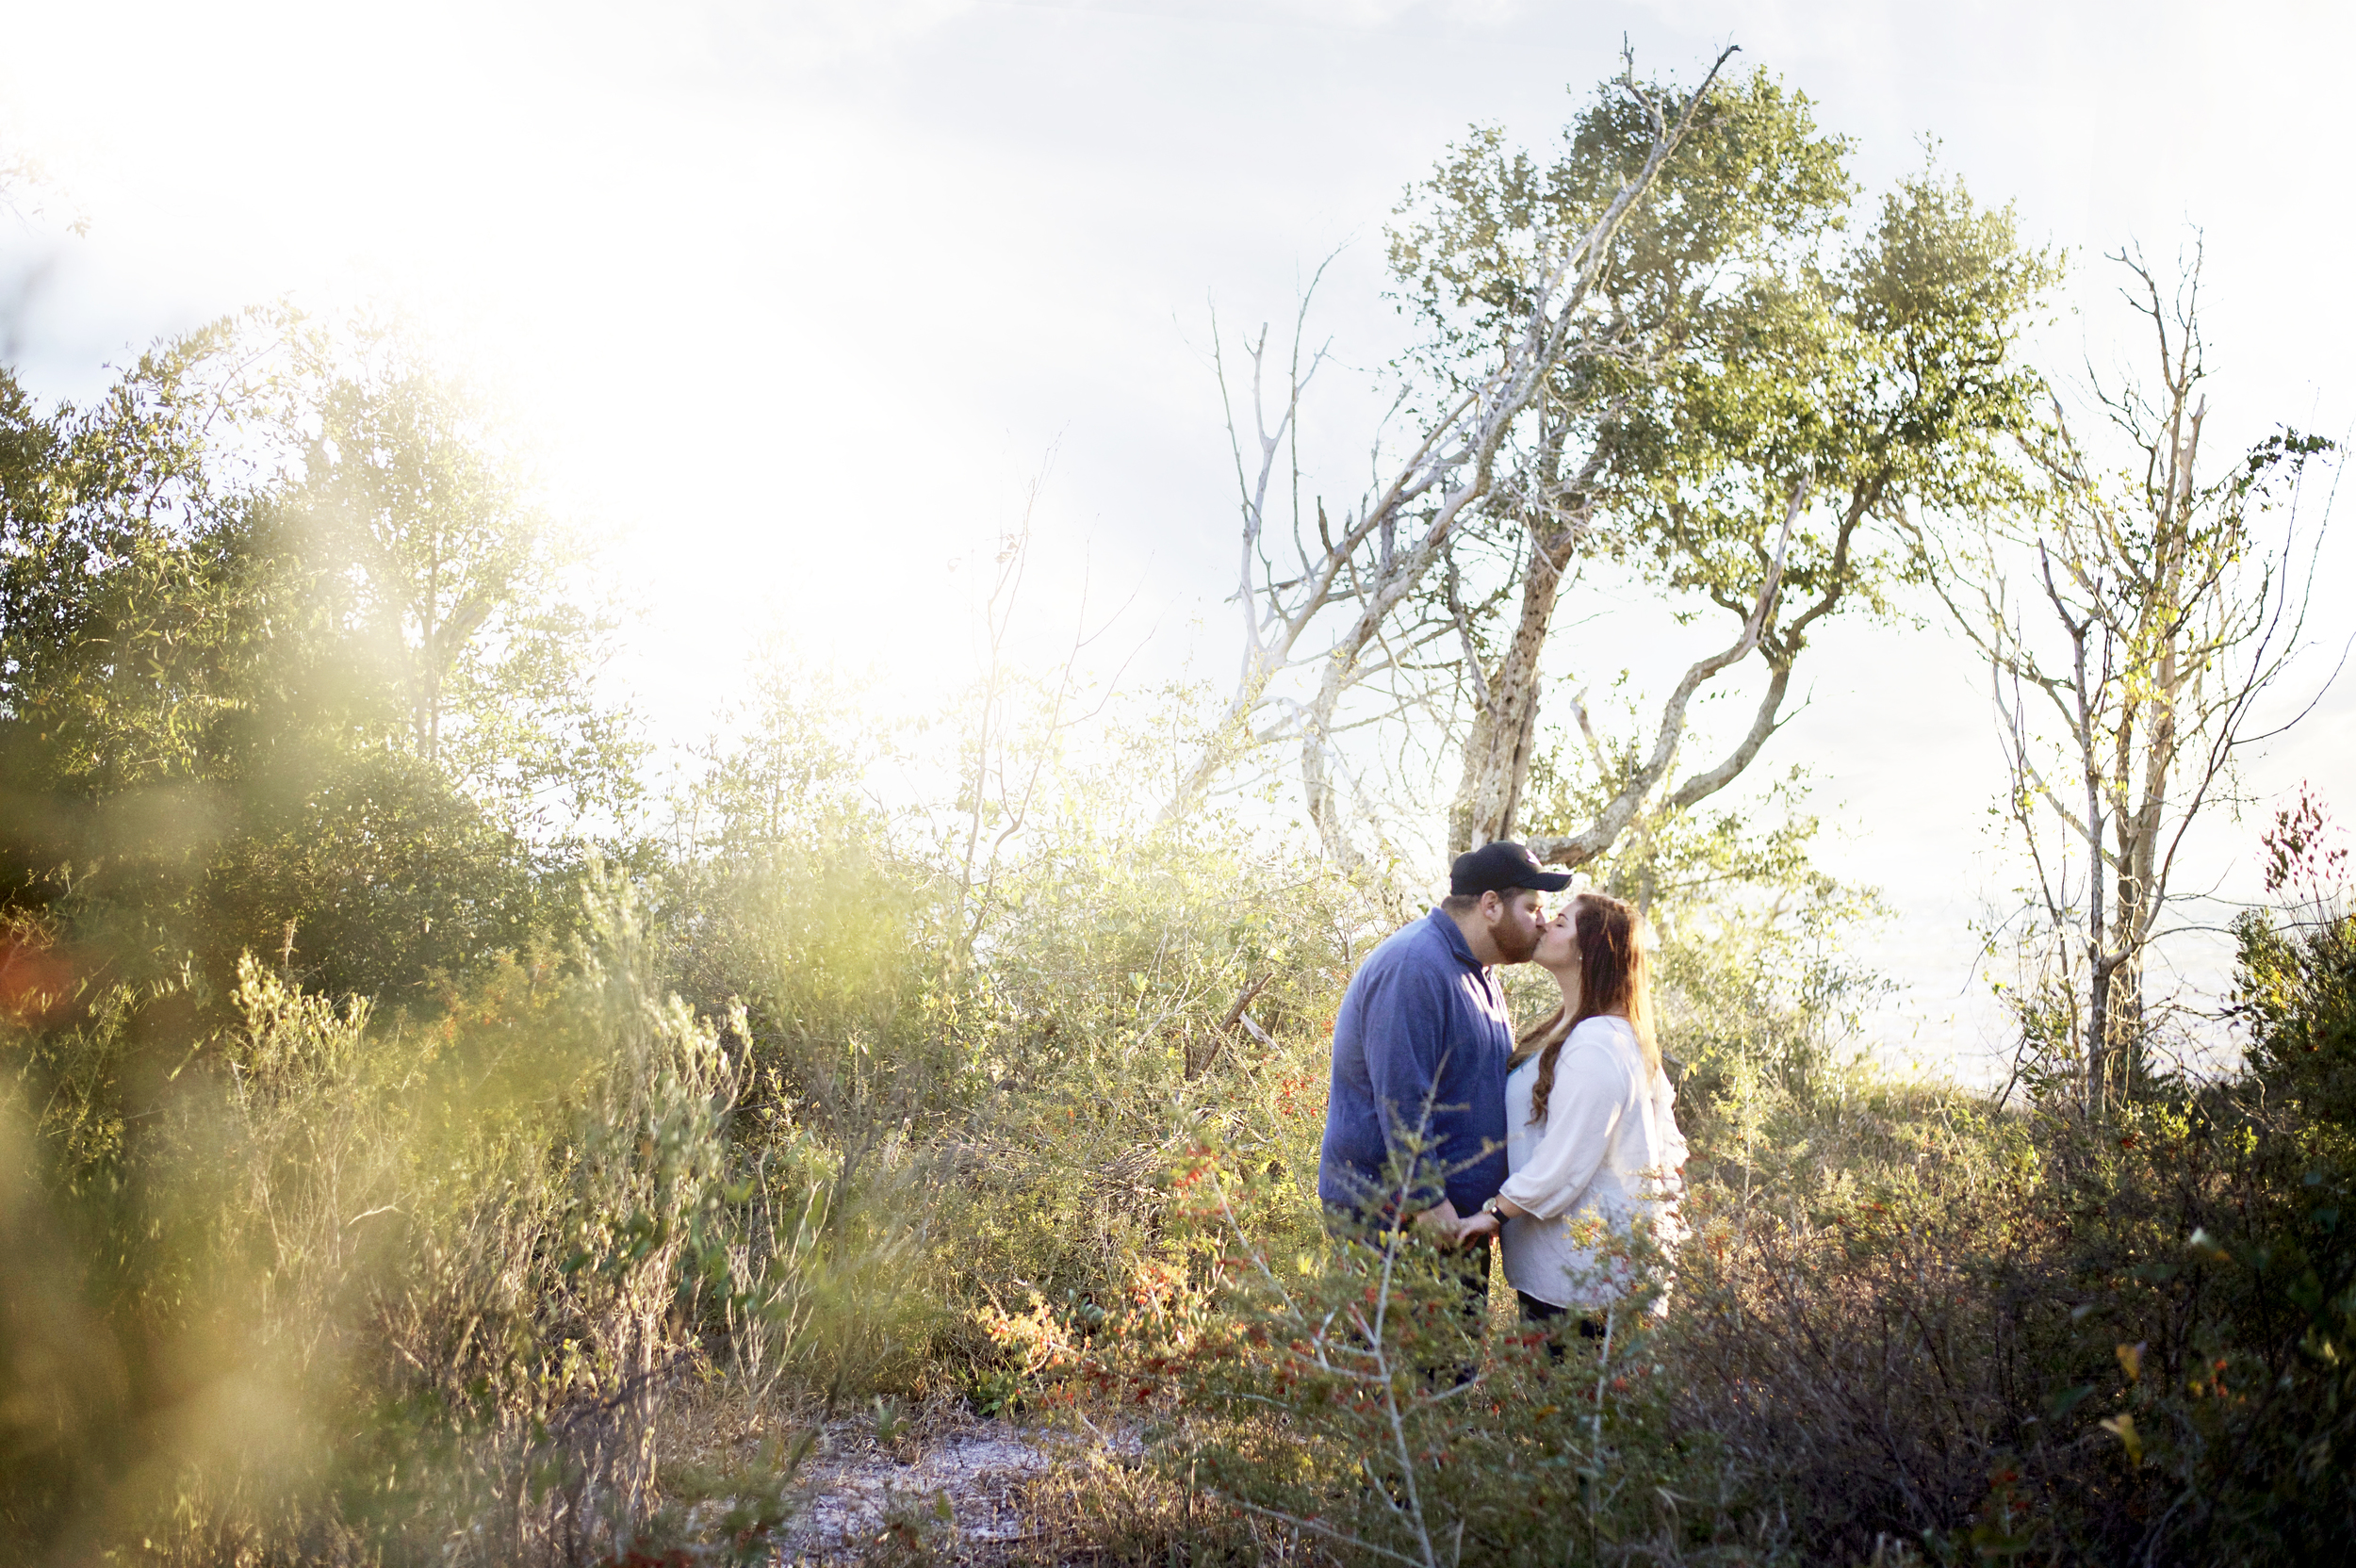 mary and ricky's engagement session - grace and serendipity wedding pensacola